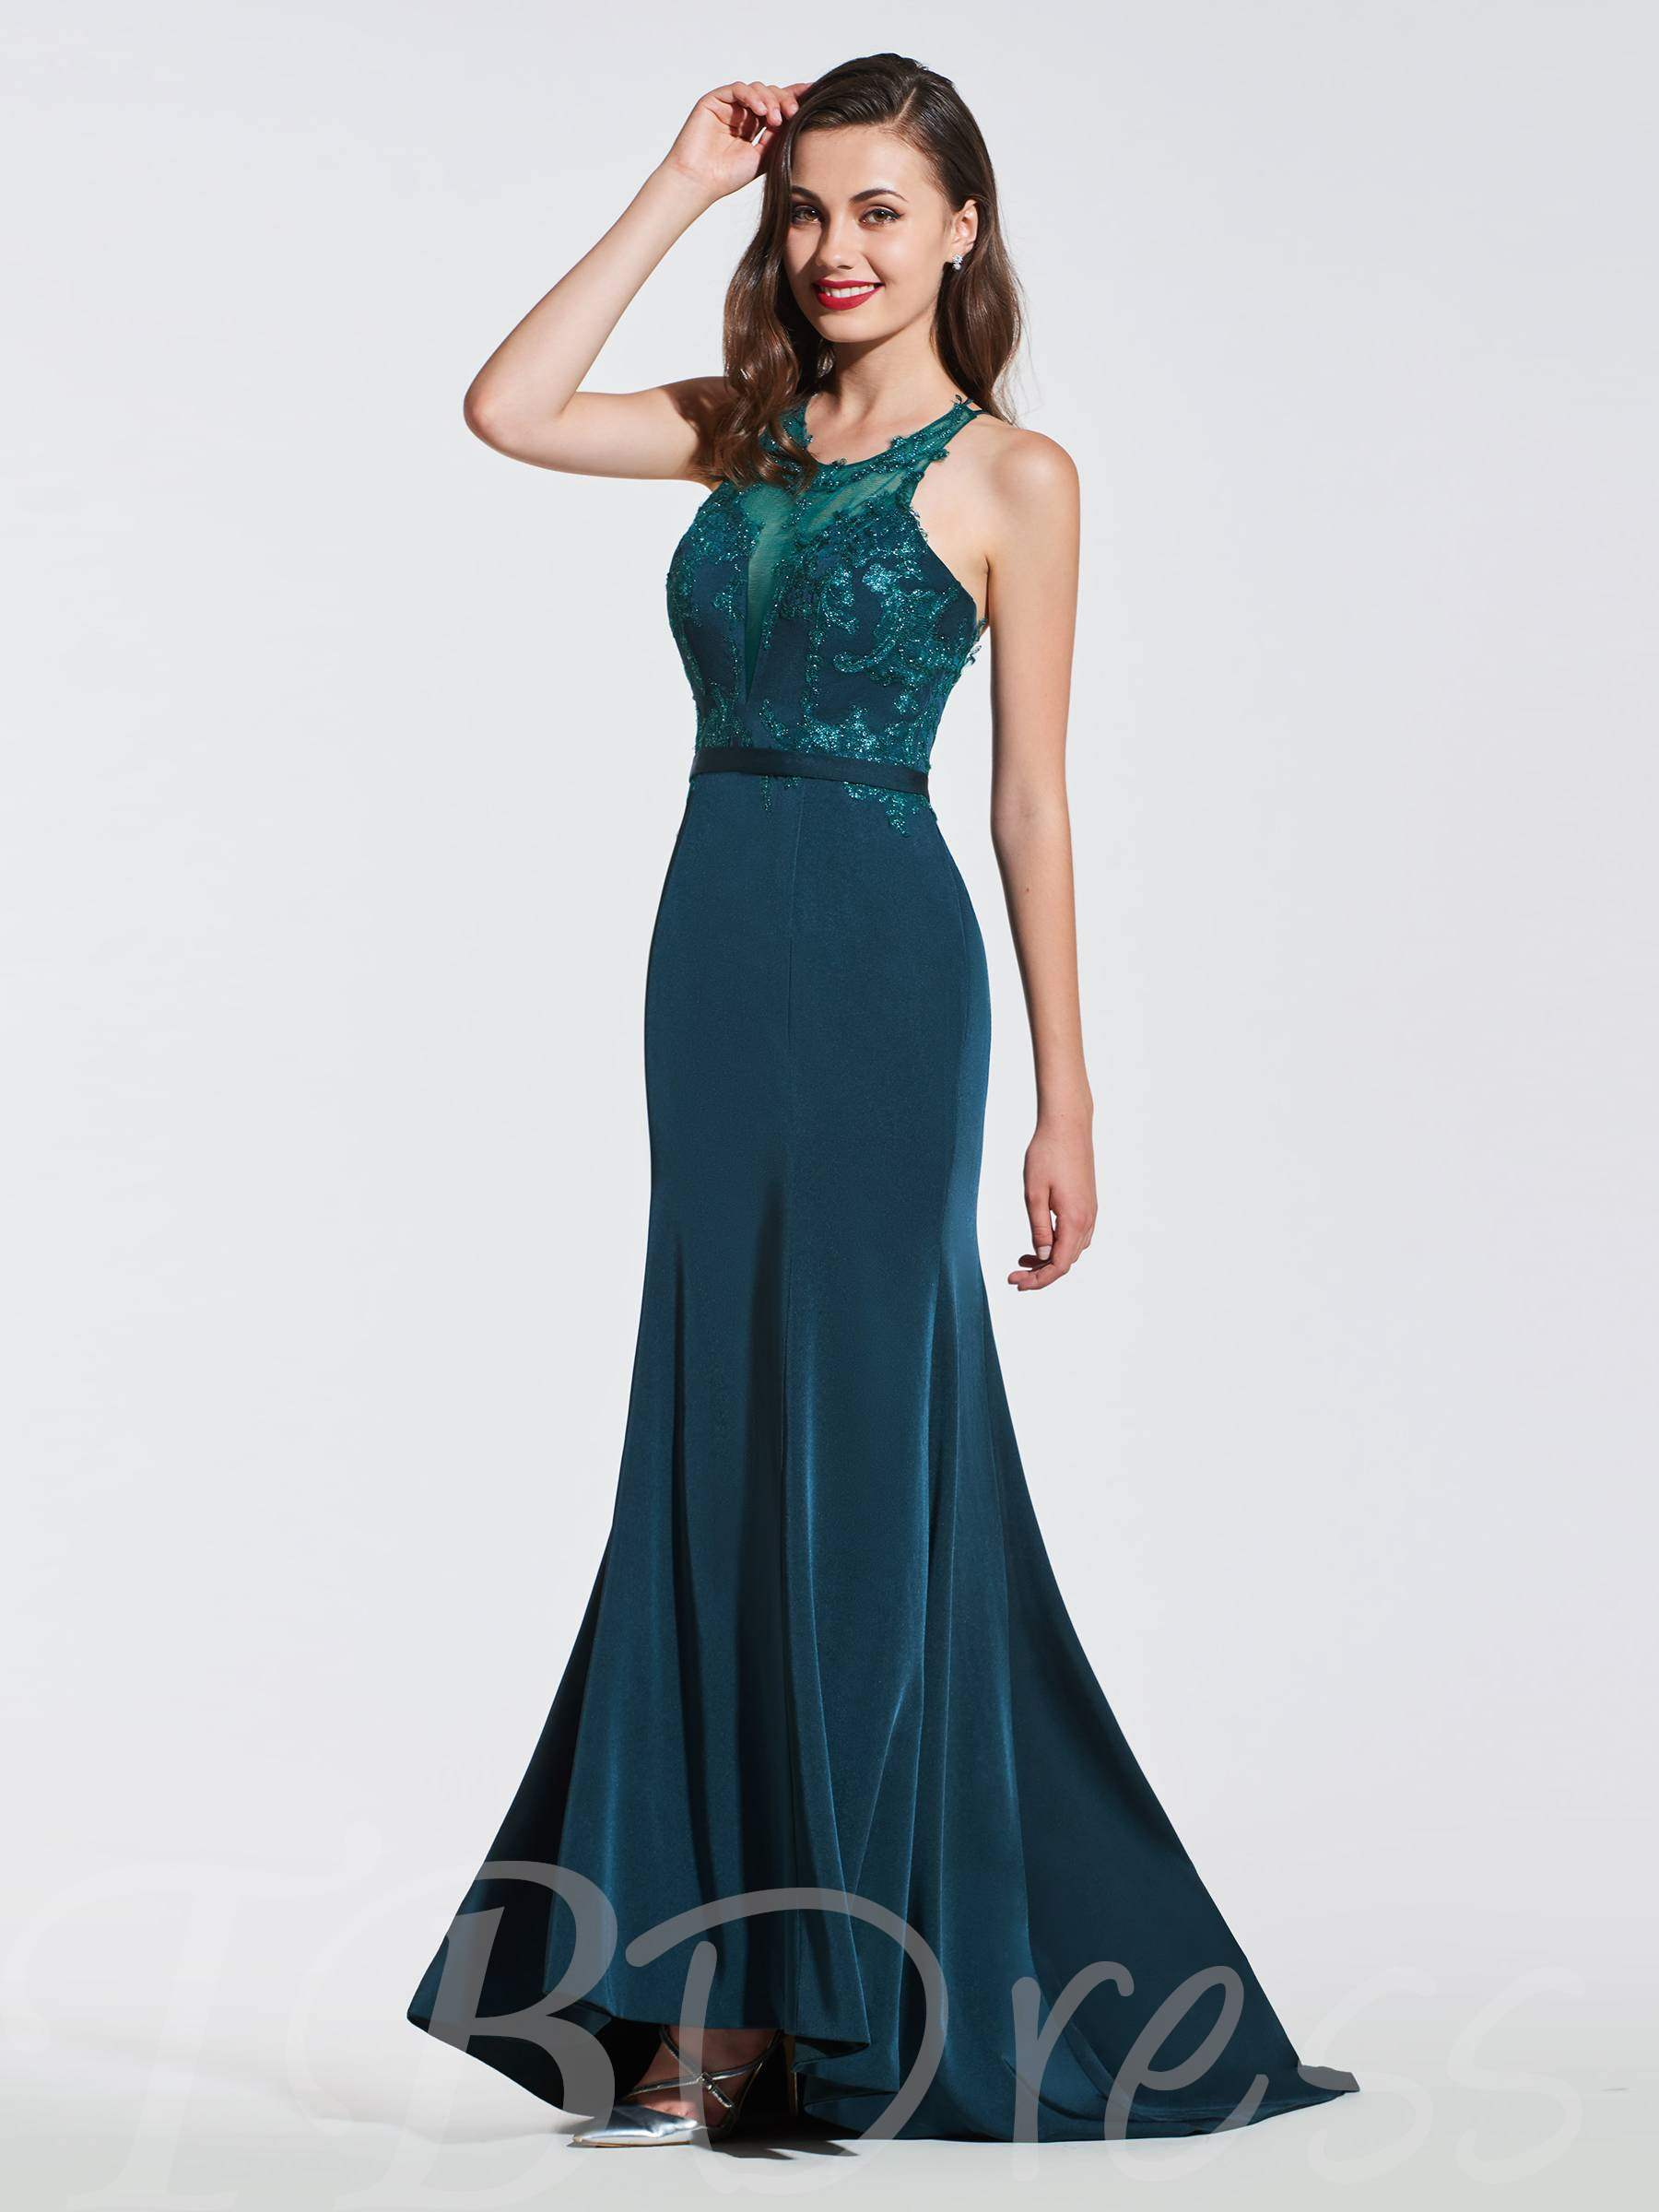 Buy Scoop Lace Trumpet Criss-Cross Straps Evening Dress, Spring,Summer,Fall,Winter, 13372954 for $166.04 in TBDress store